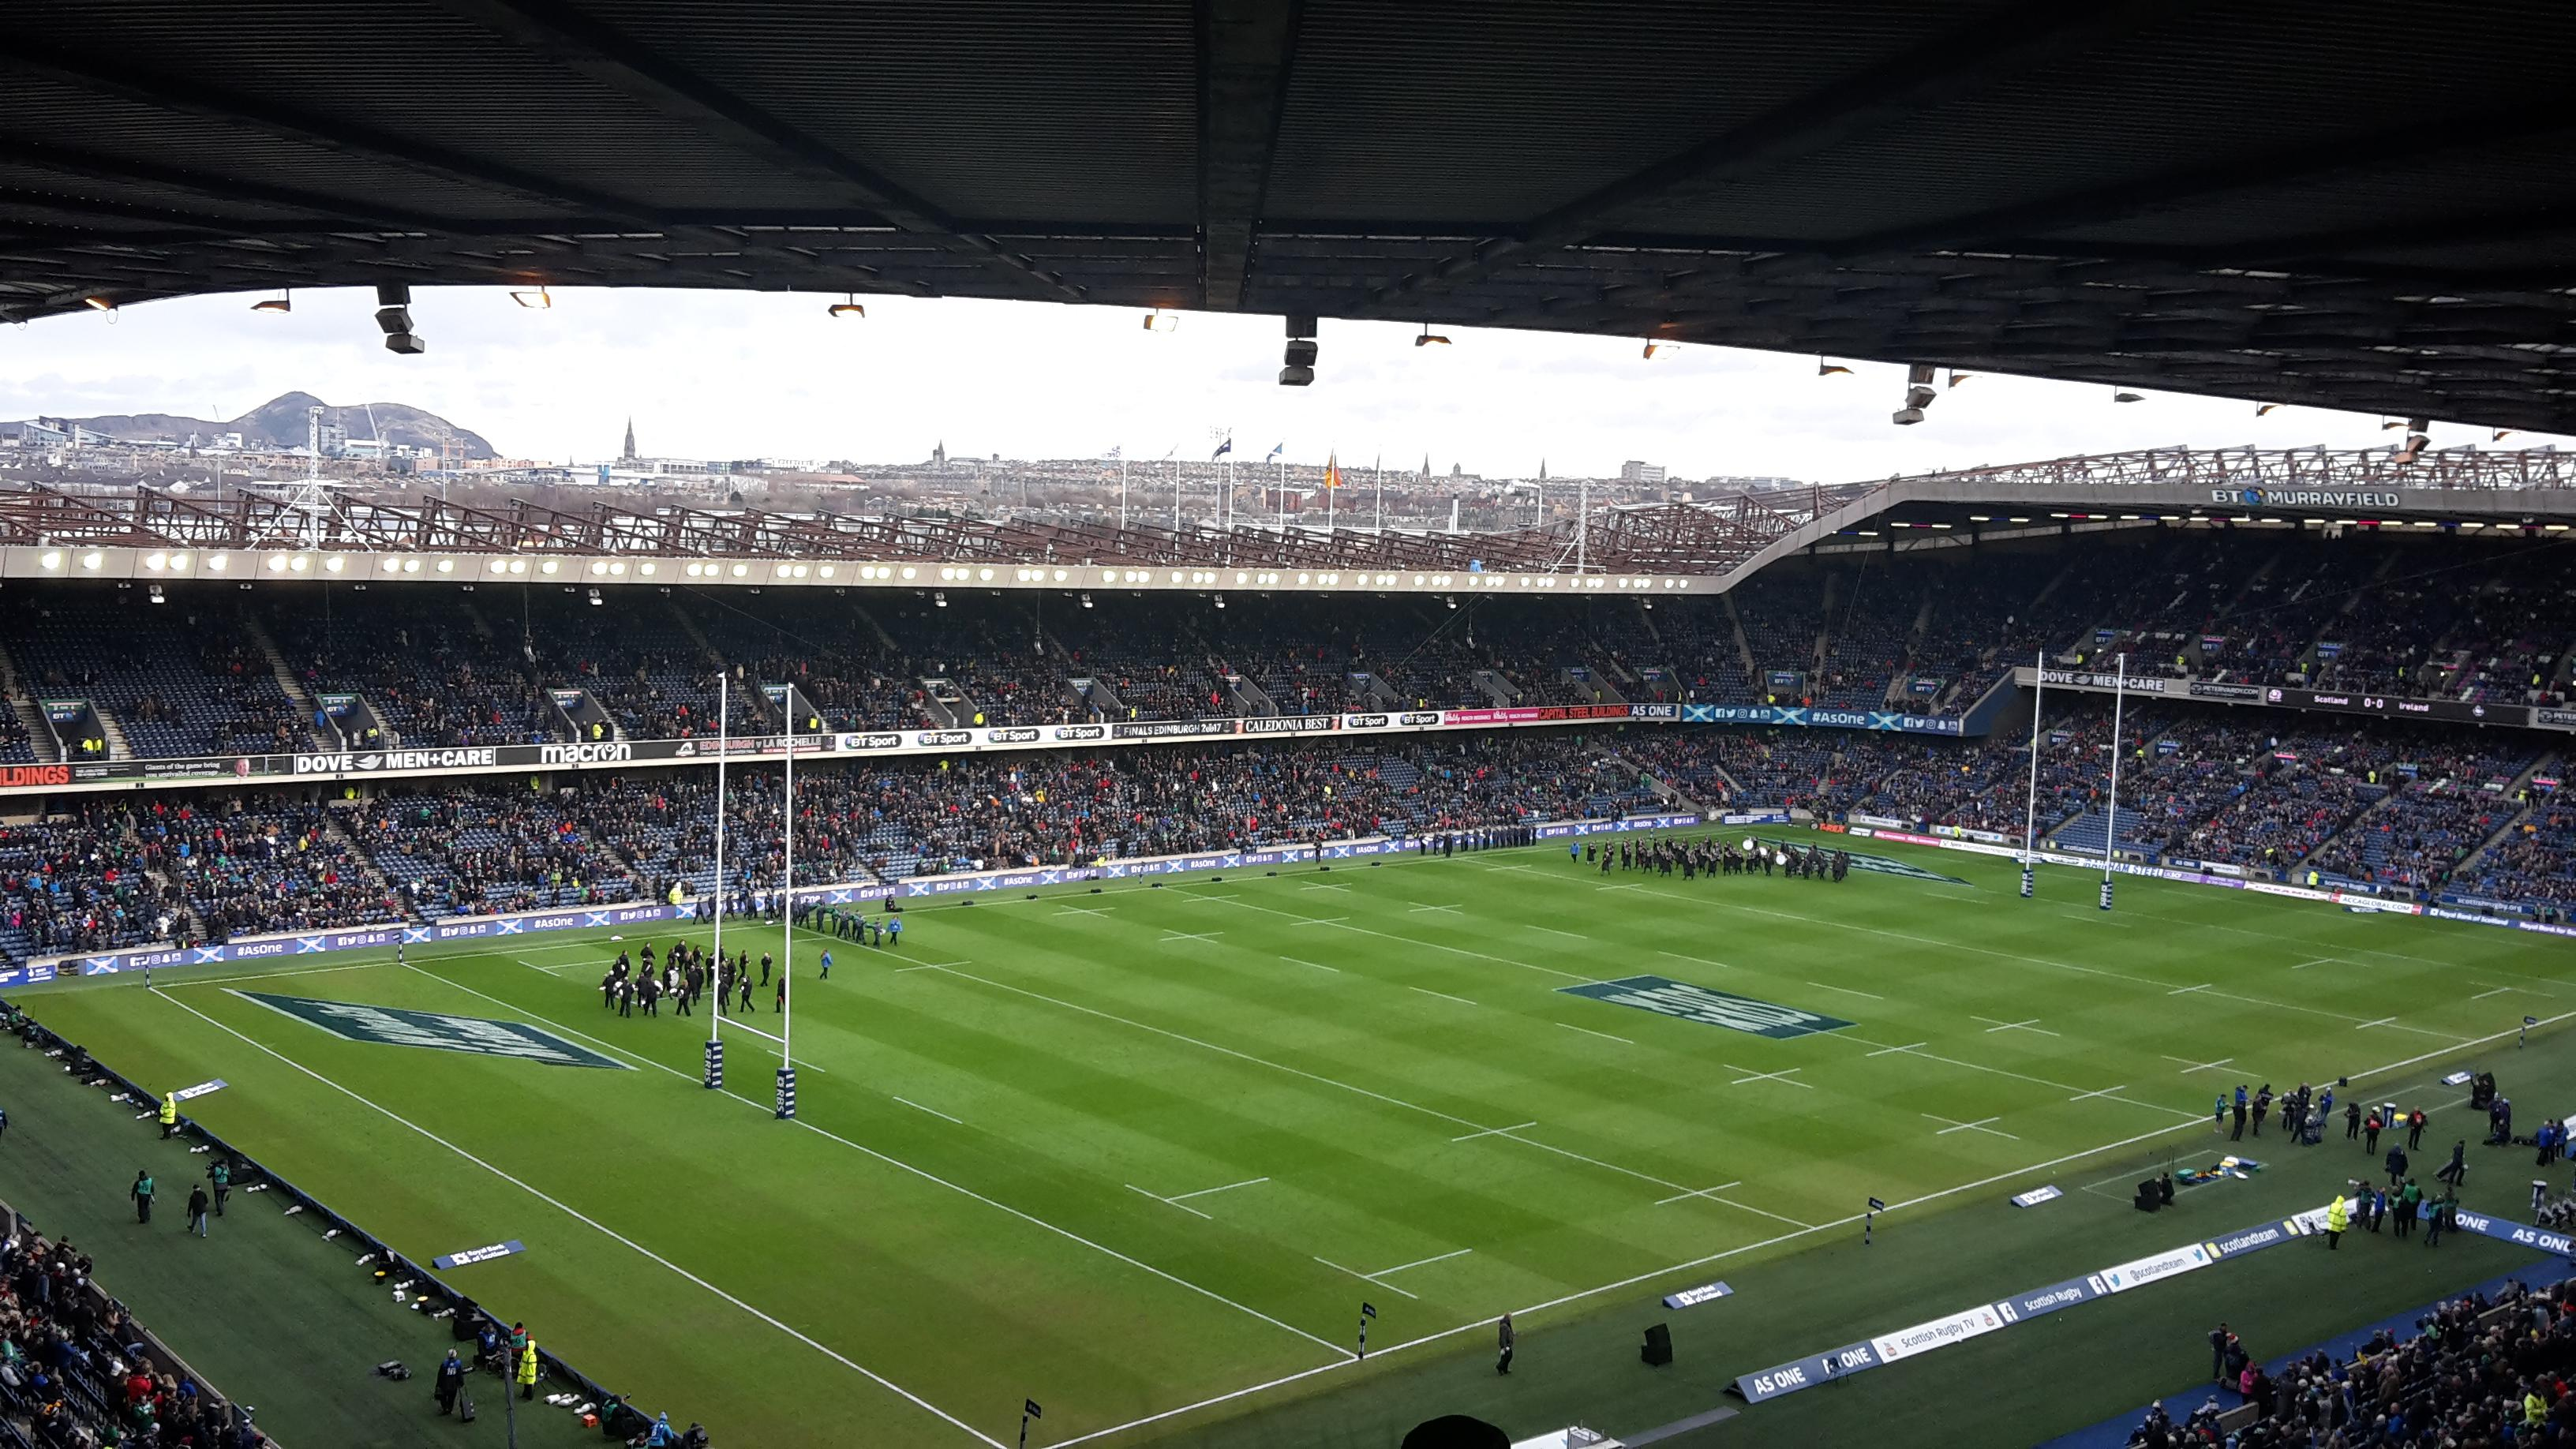 Murrayfield Stadium Section W40 Row RR Seat 16